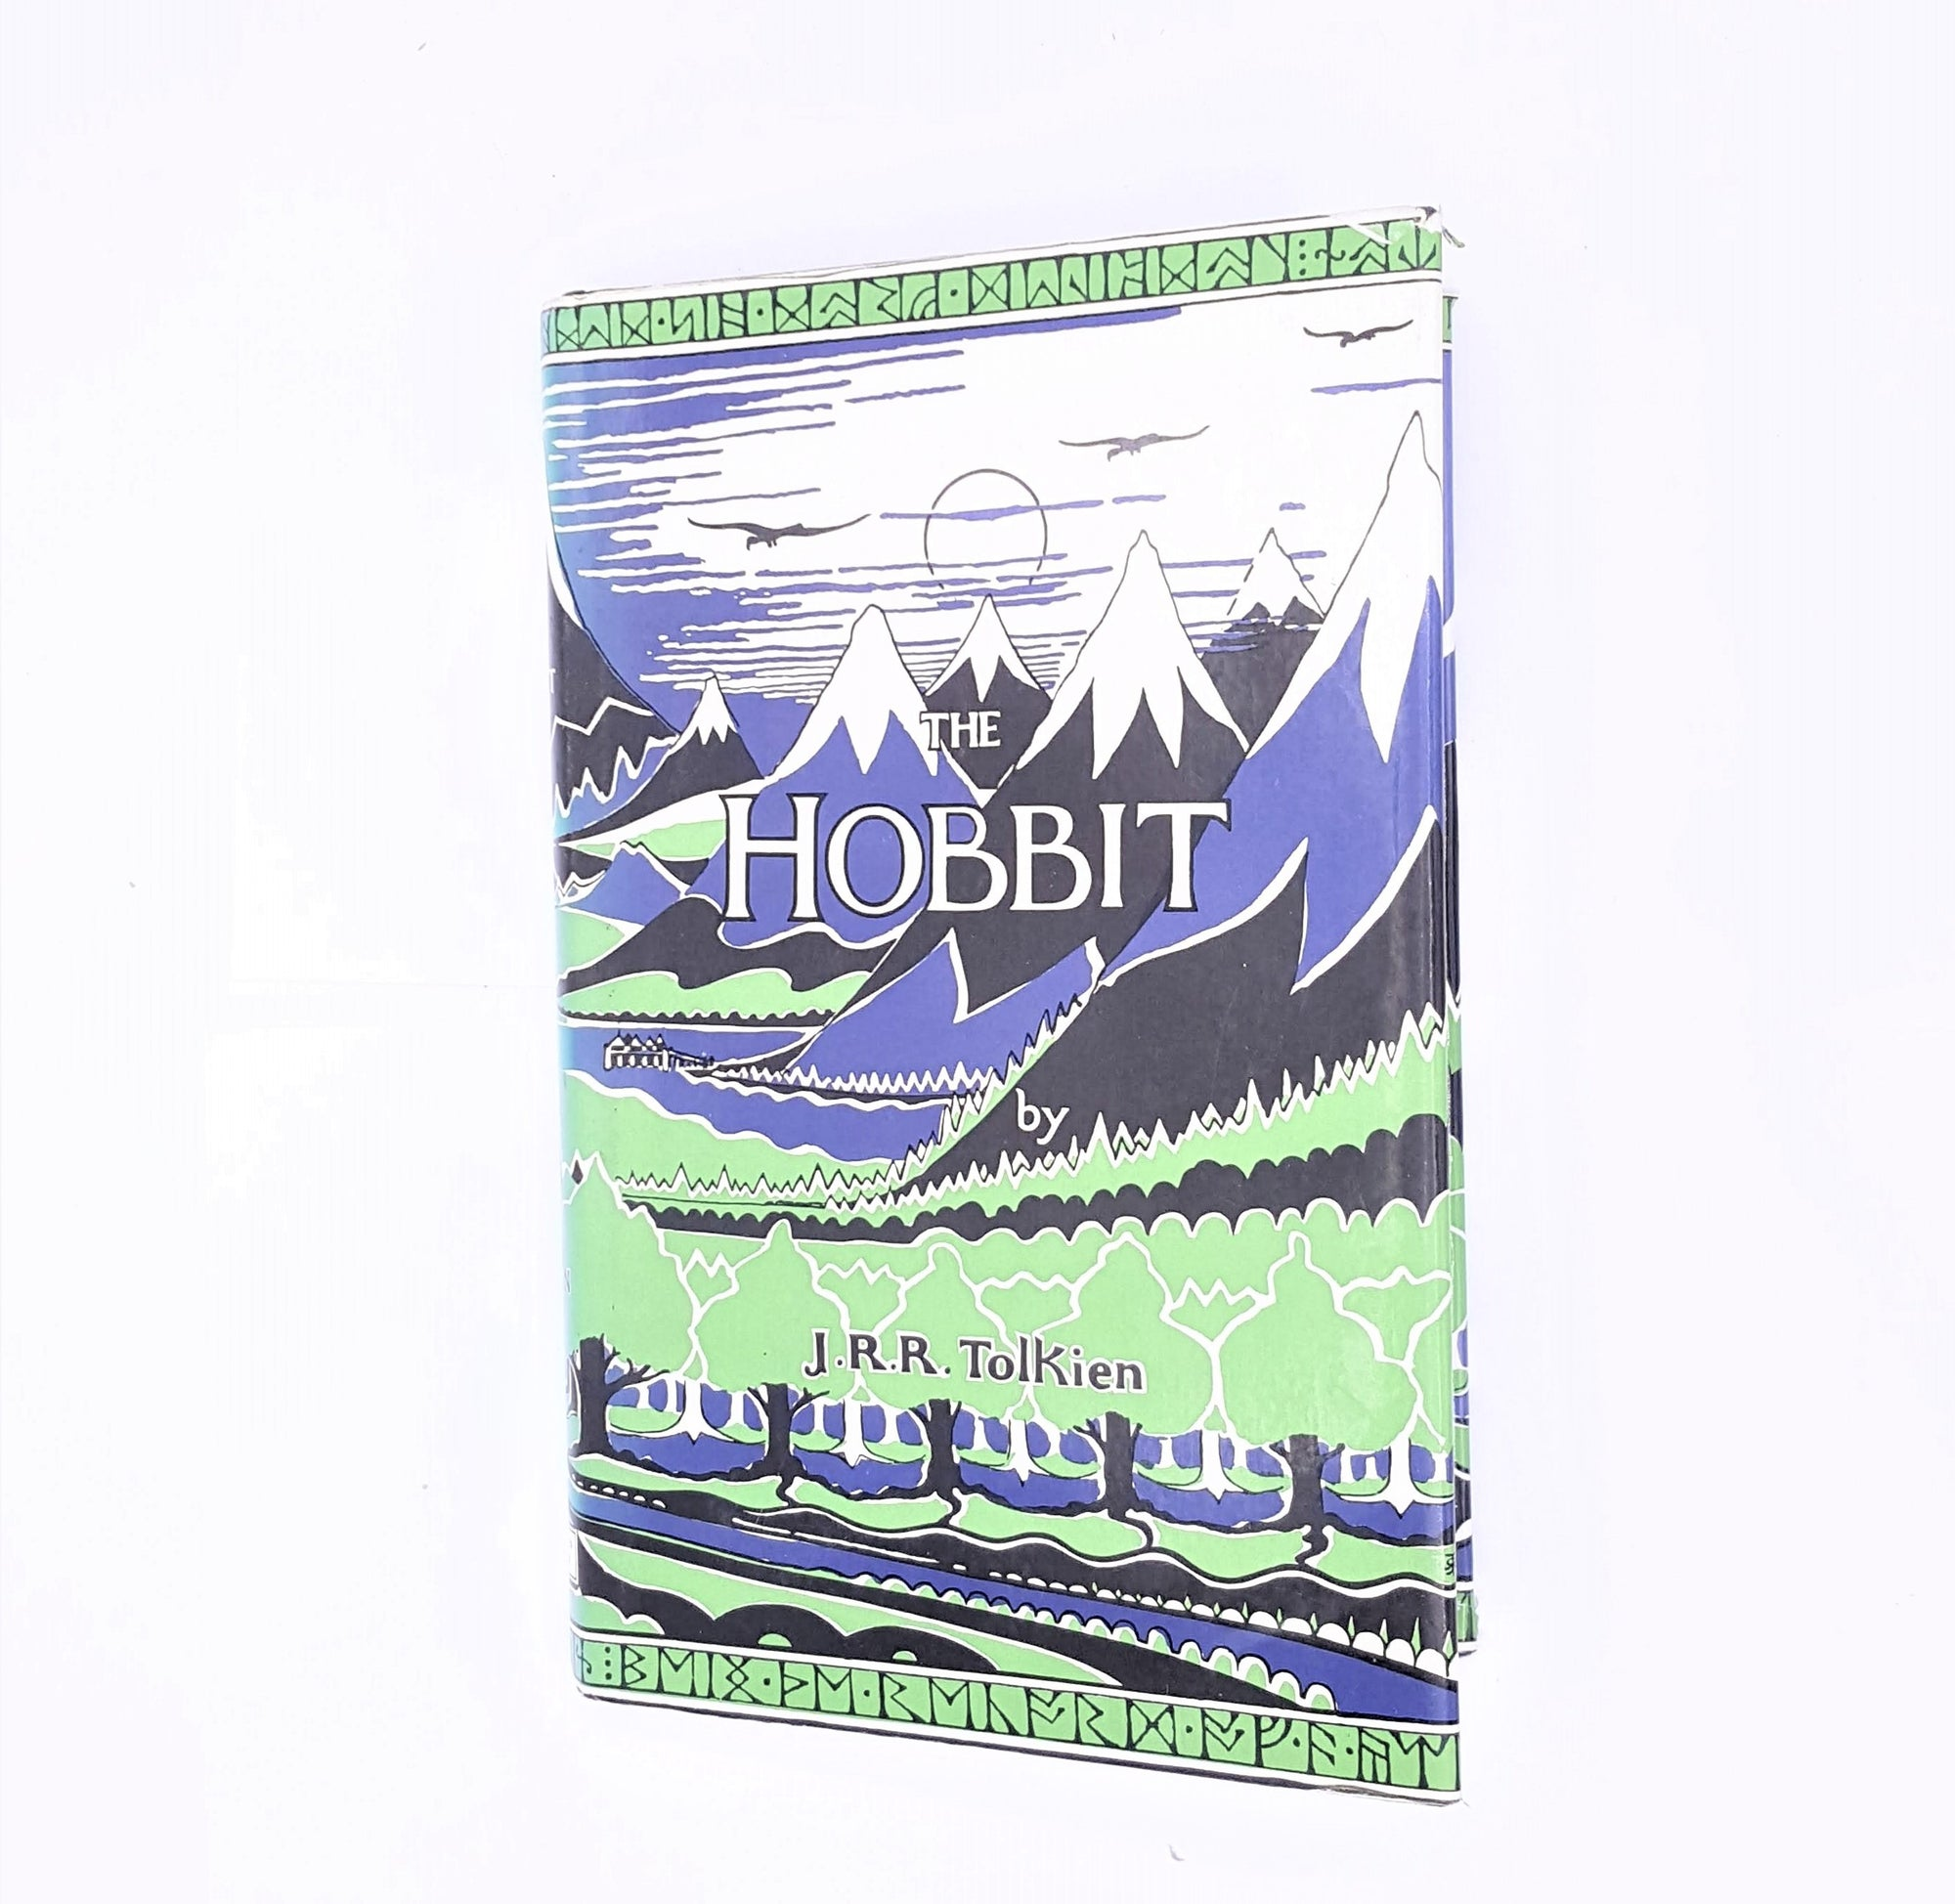 J.R.R. Tolkien's The Hobbit 1978